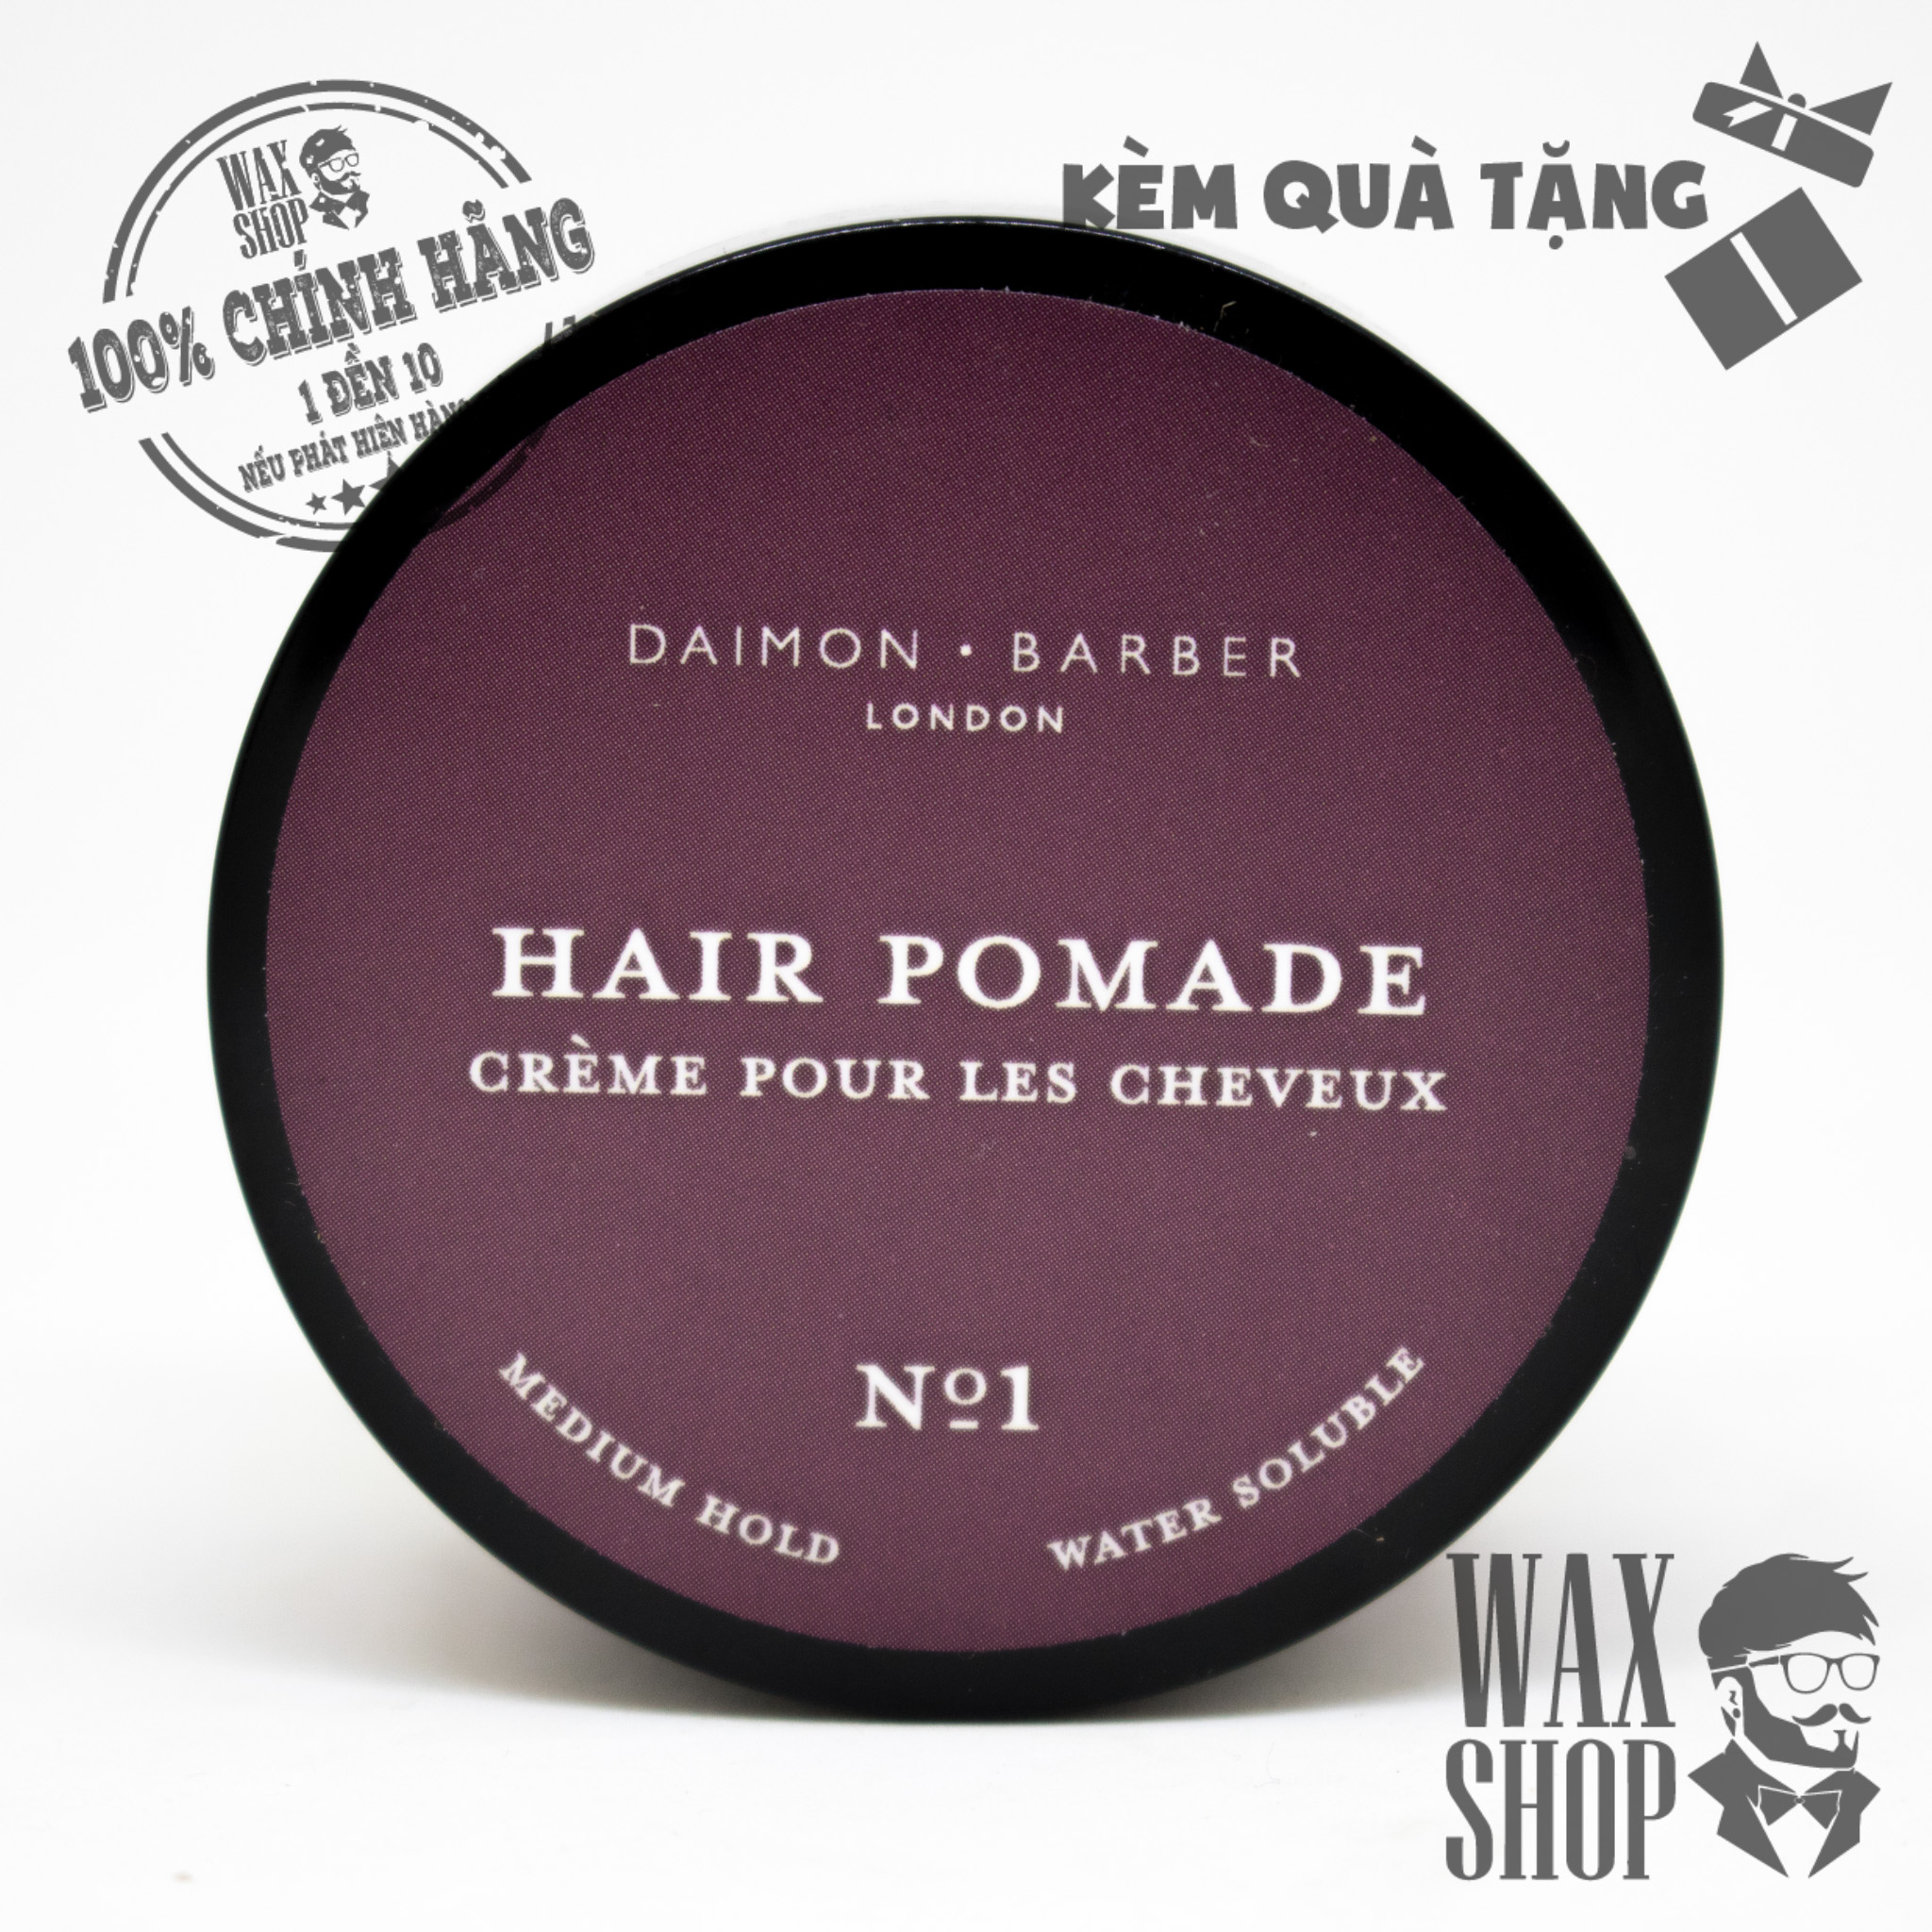 Hair Pomade - Daimon Barber